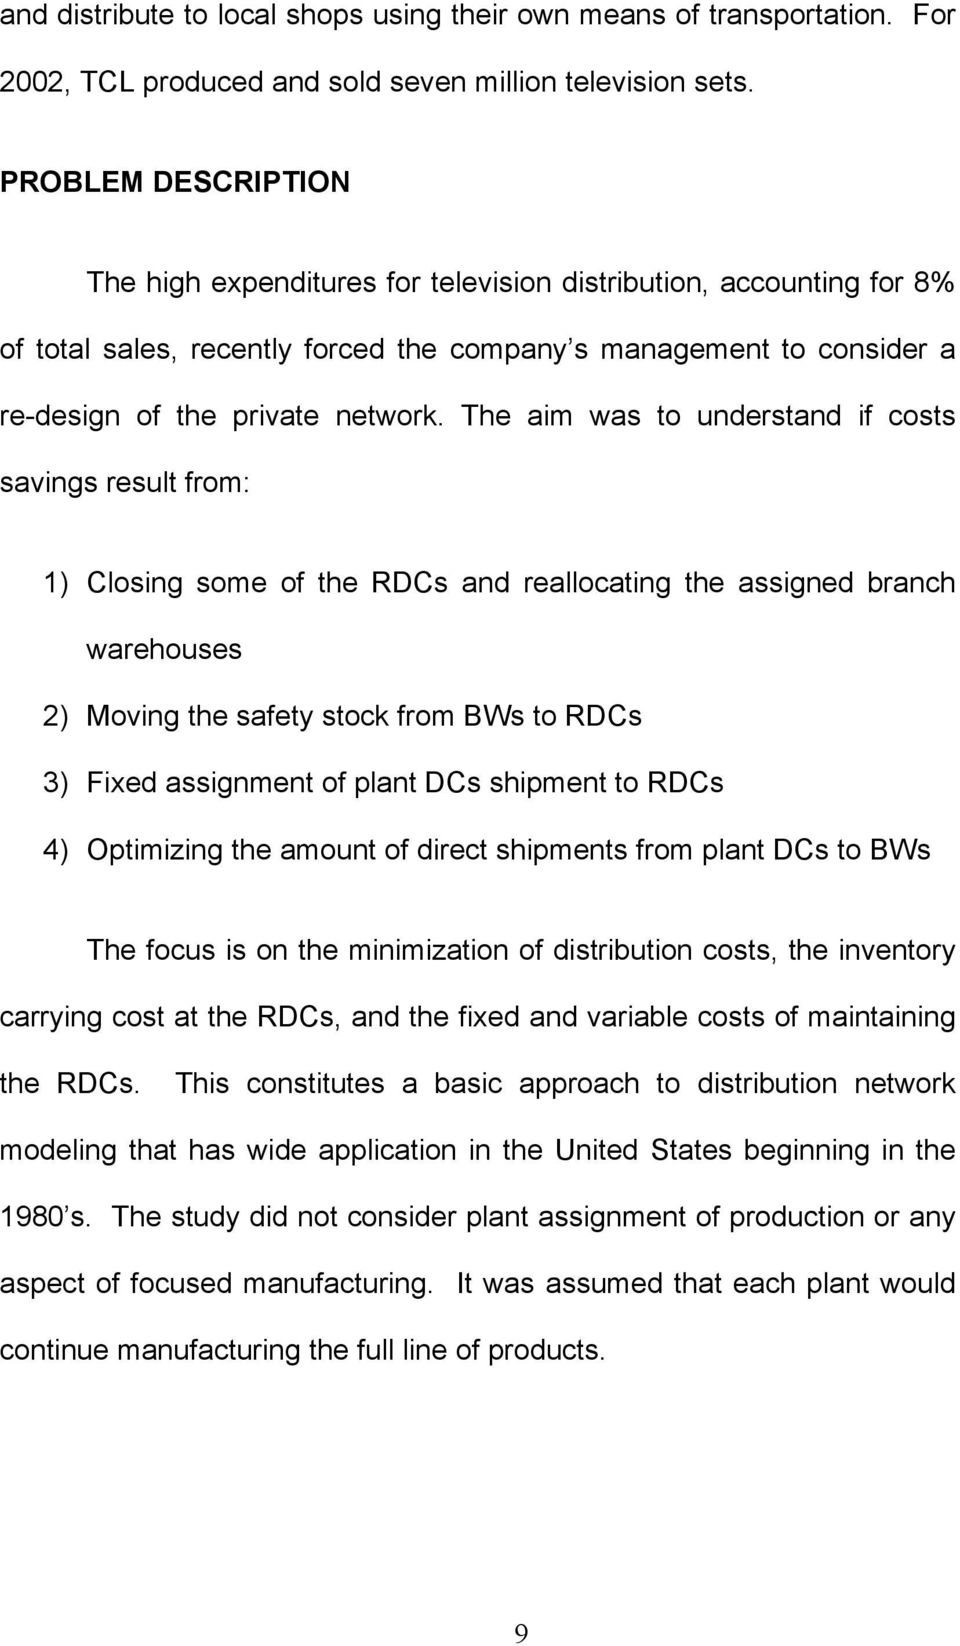 The aim was to understand if costs savings result from: 1) Closing some of the RDCs and reallocating the assigned branch warehouses 2) Moving the safety stock from BWs to RDCs 3) Fixed assignment of